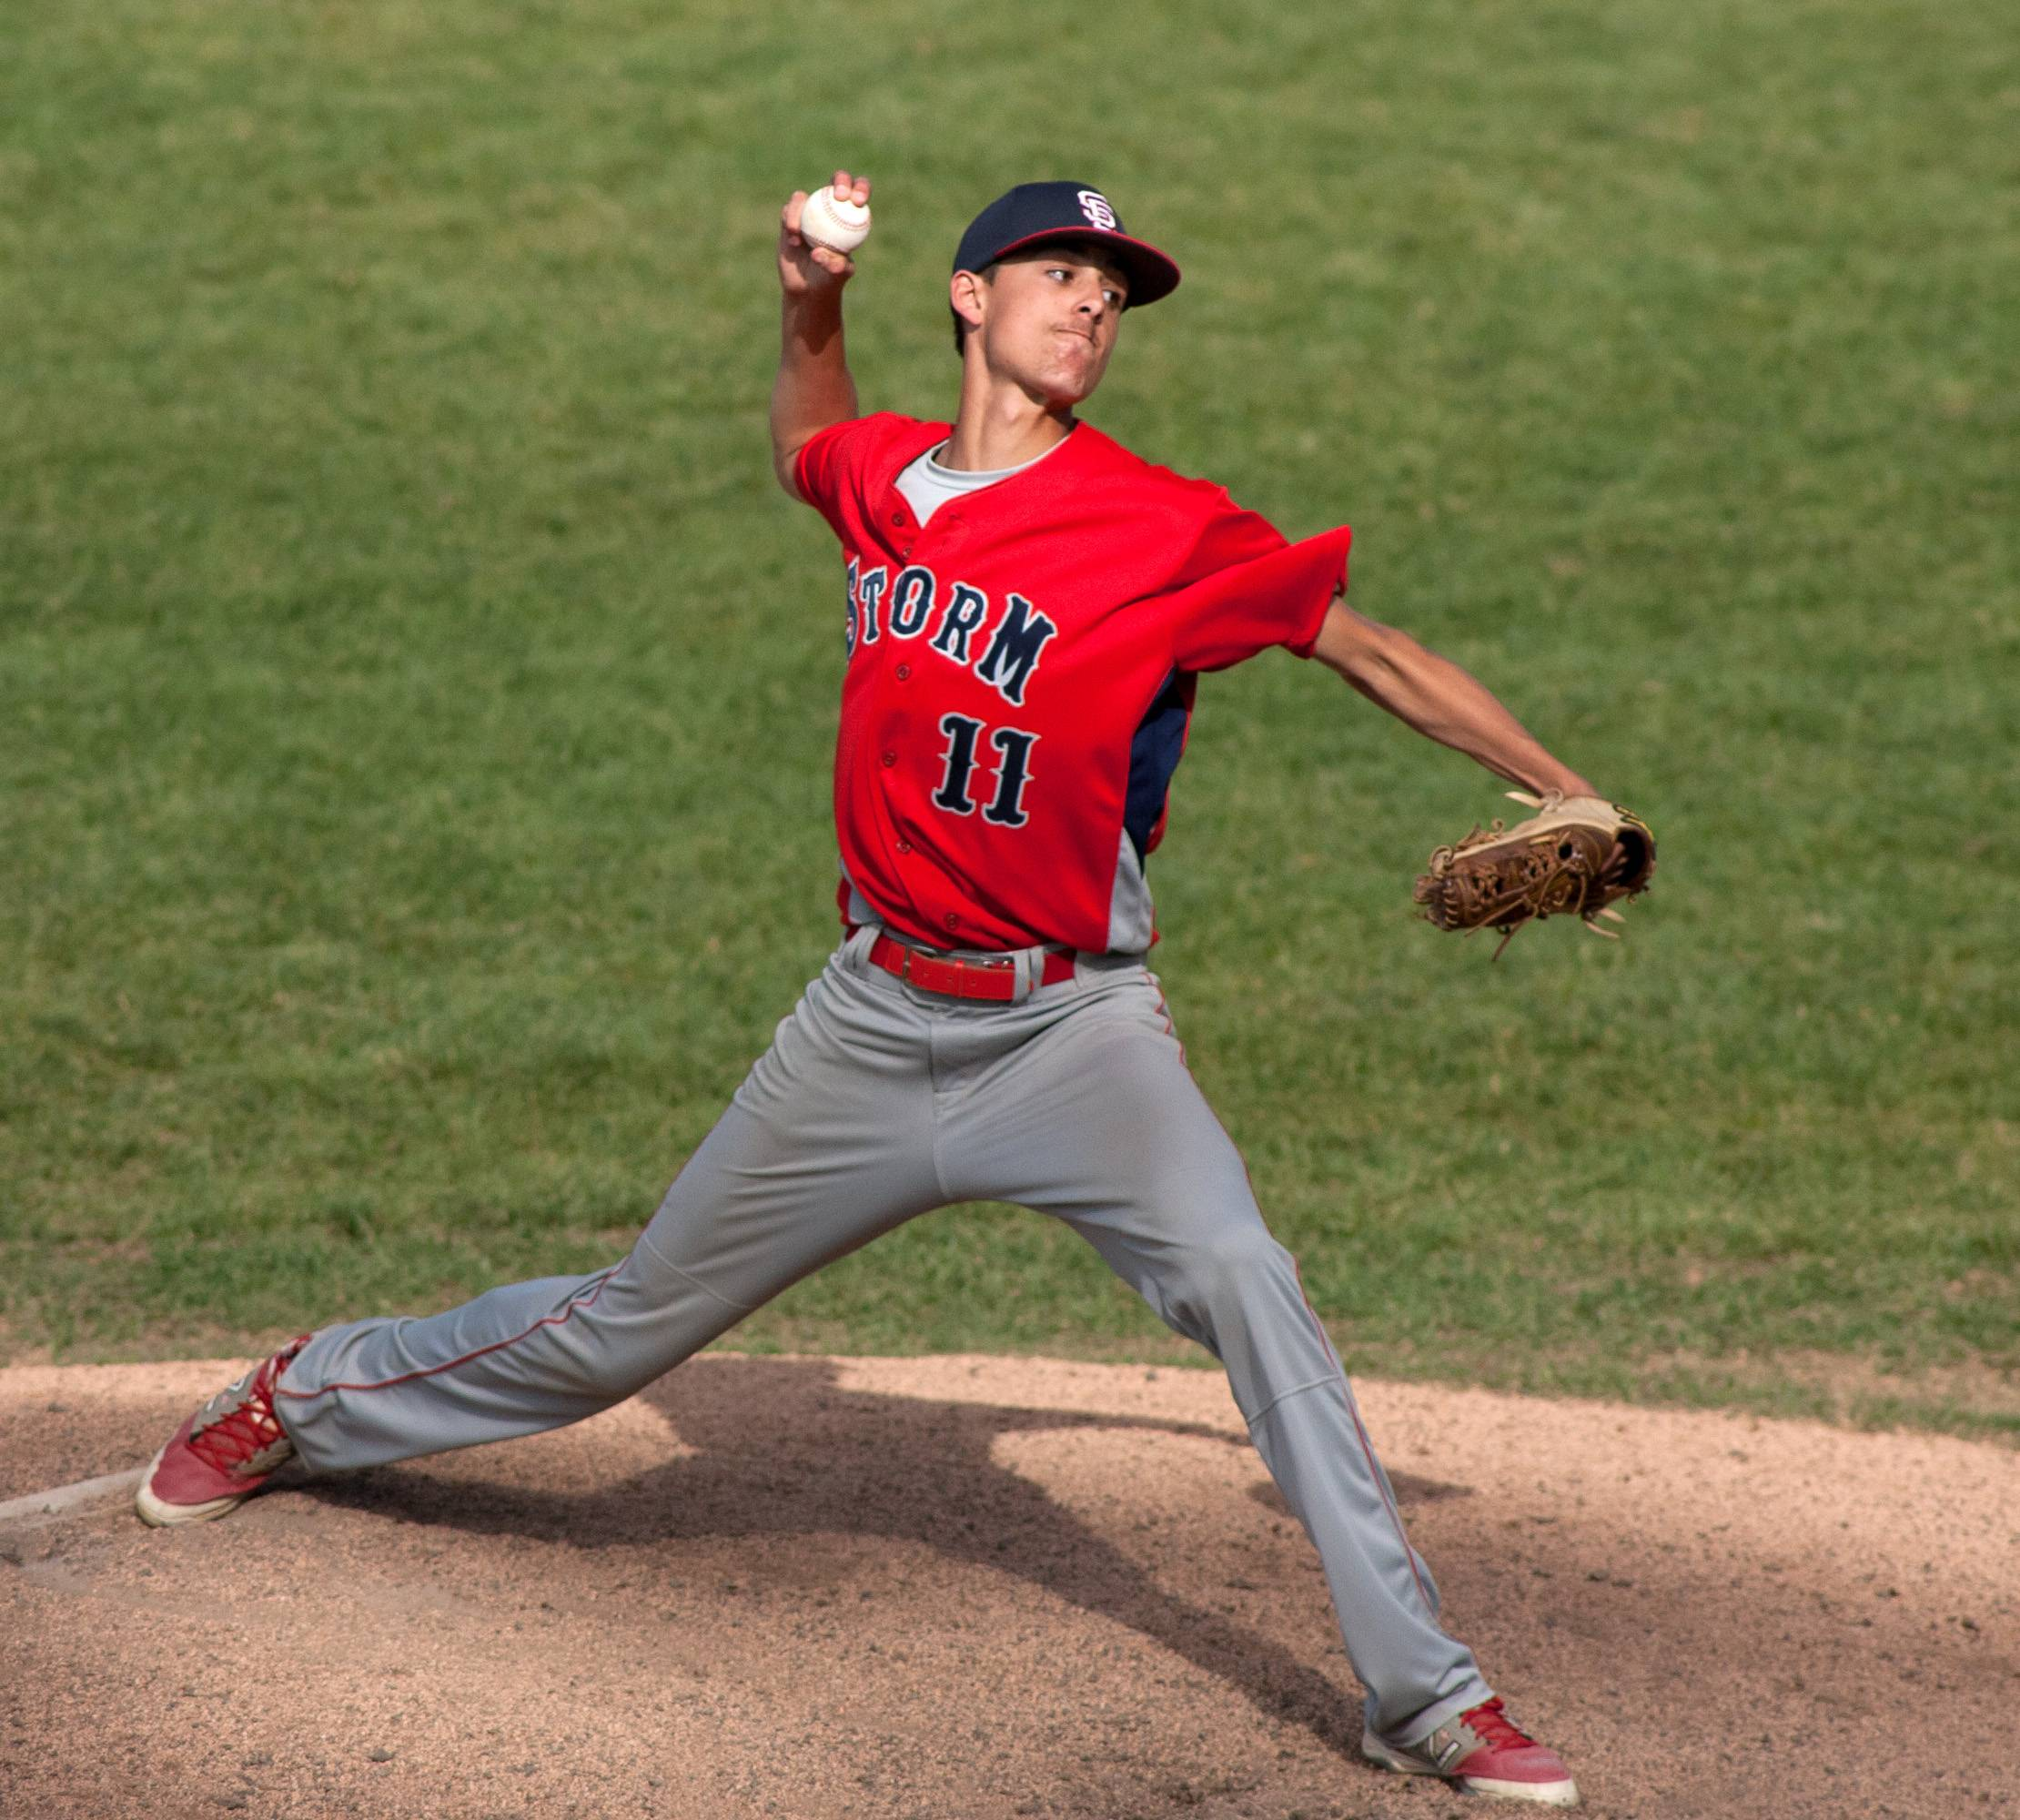 South Elgin pitcher Max Keough delivers against Prairie Ridge during the Class 4A third-place game at Silver Cross Field in Joliet.